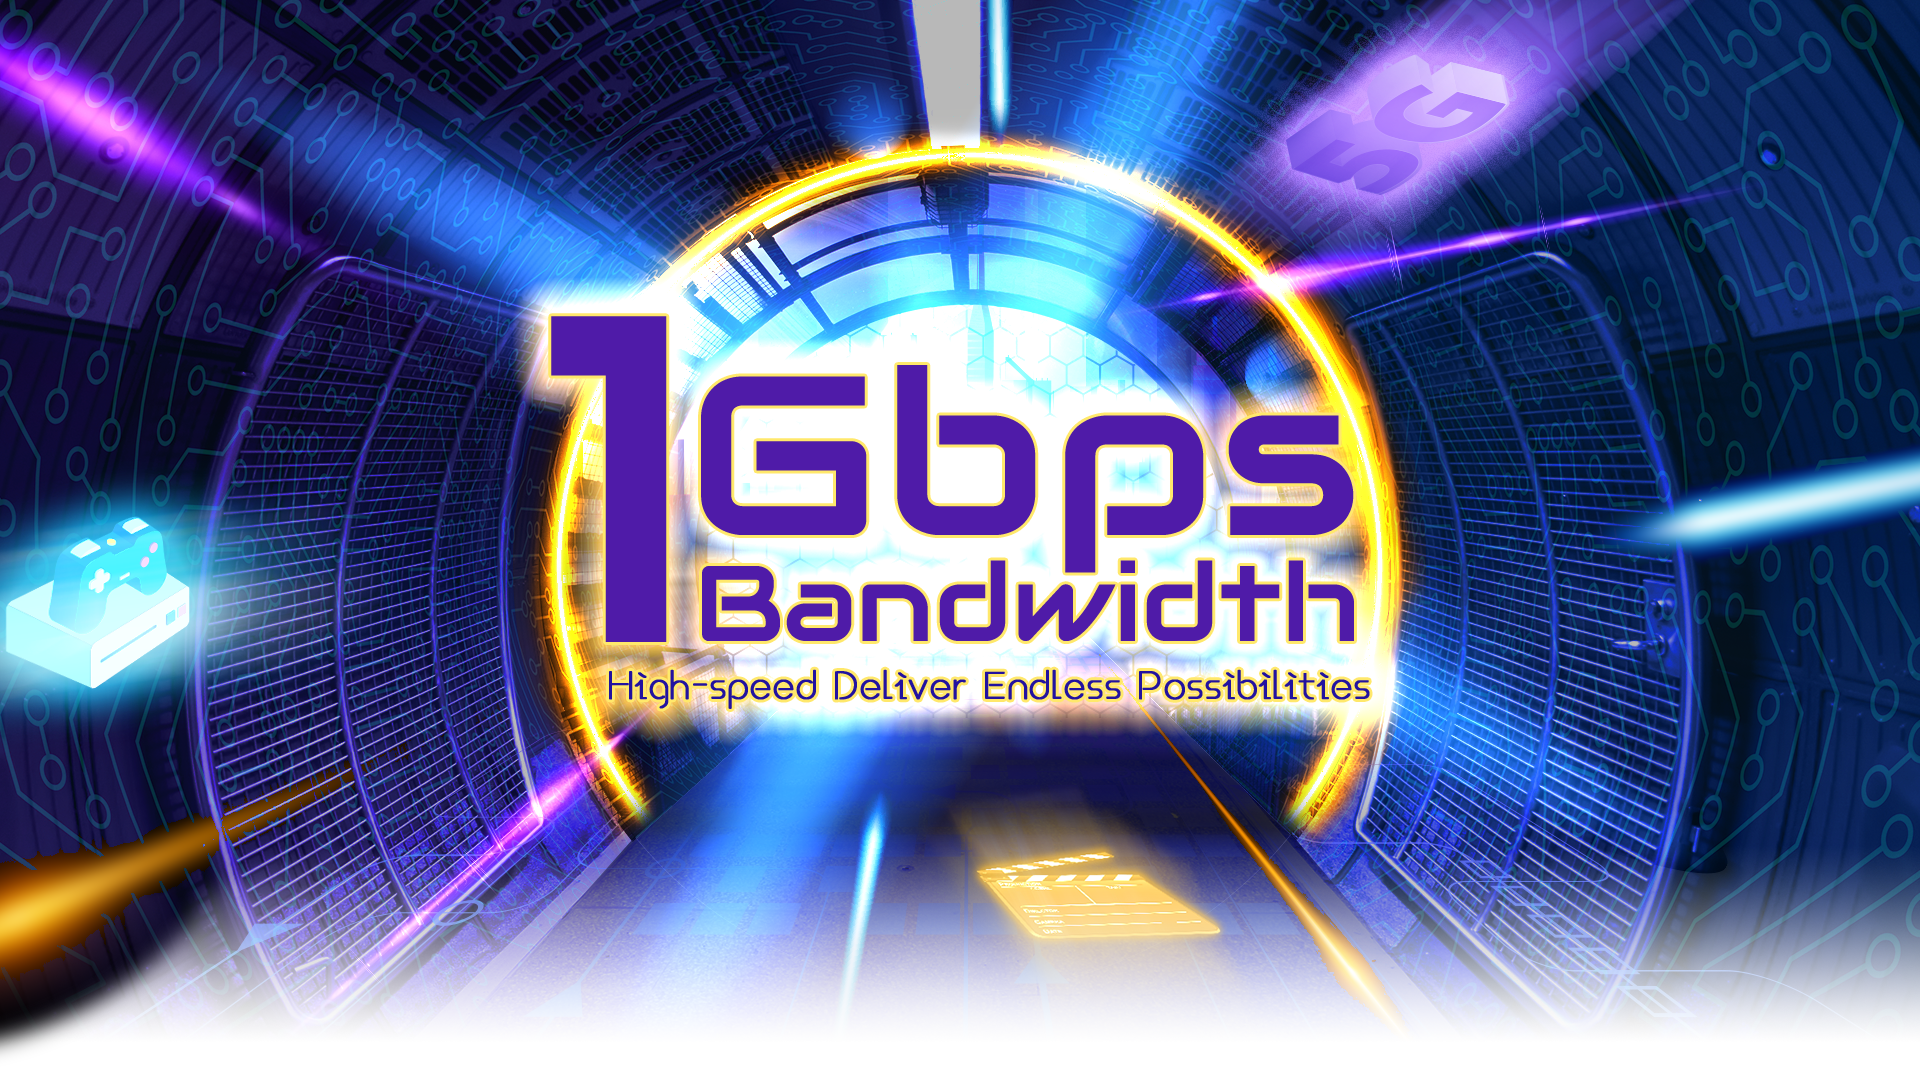 1Gbps Bandwidth High-speed Deliver Endless Possibilities